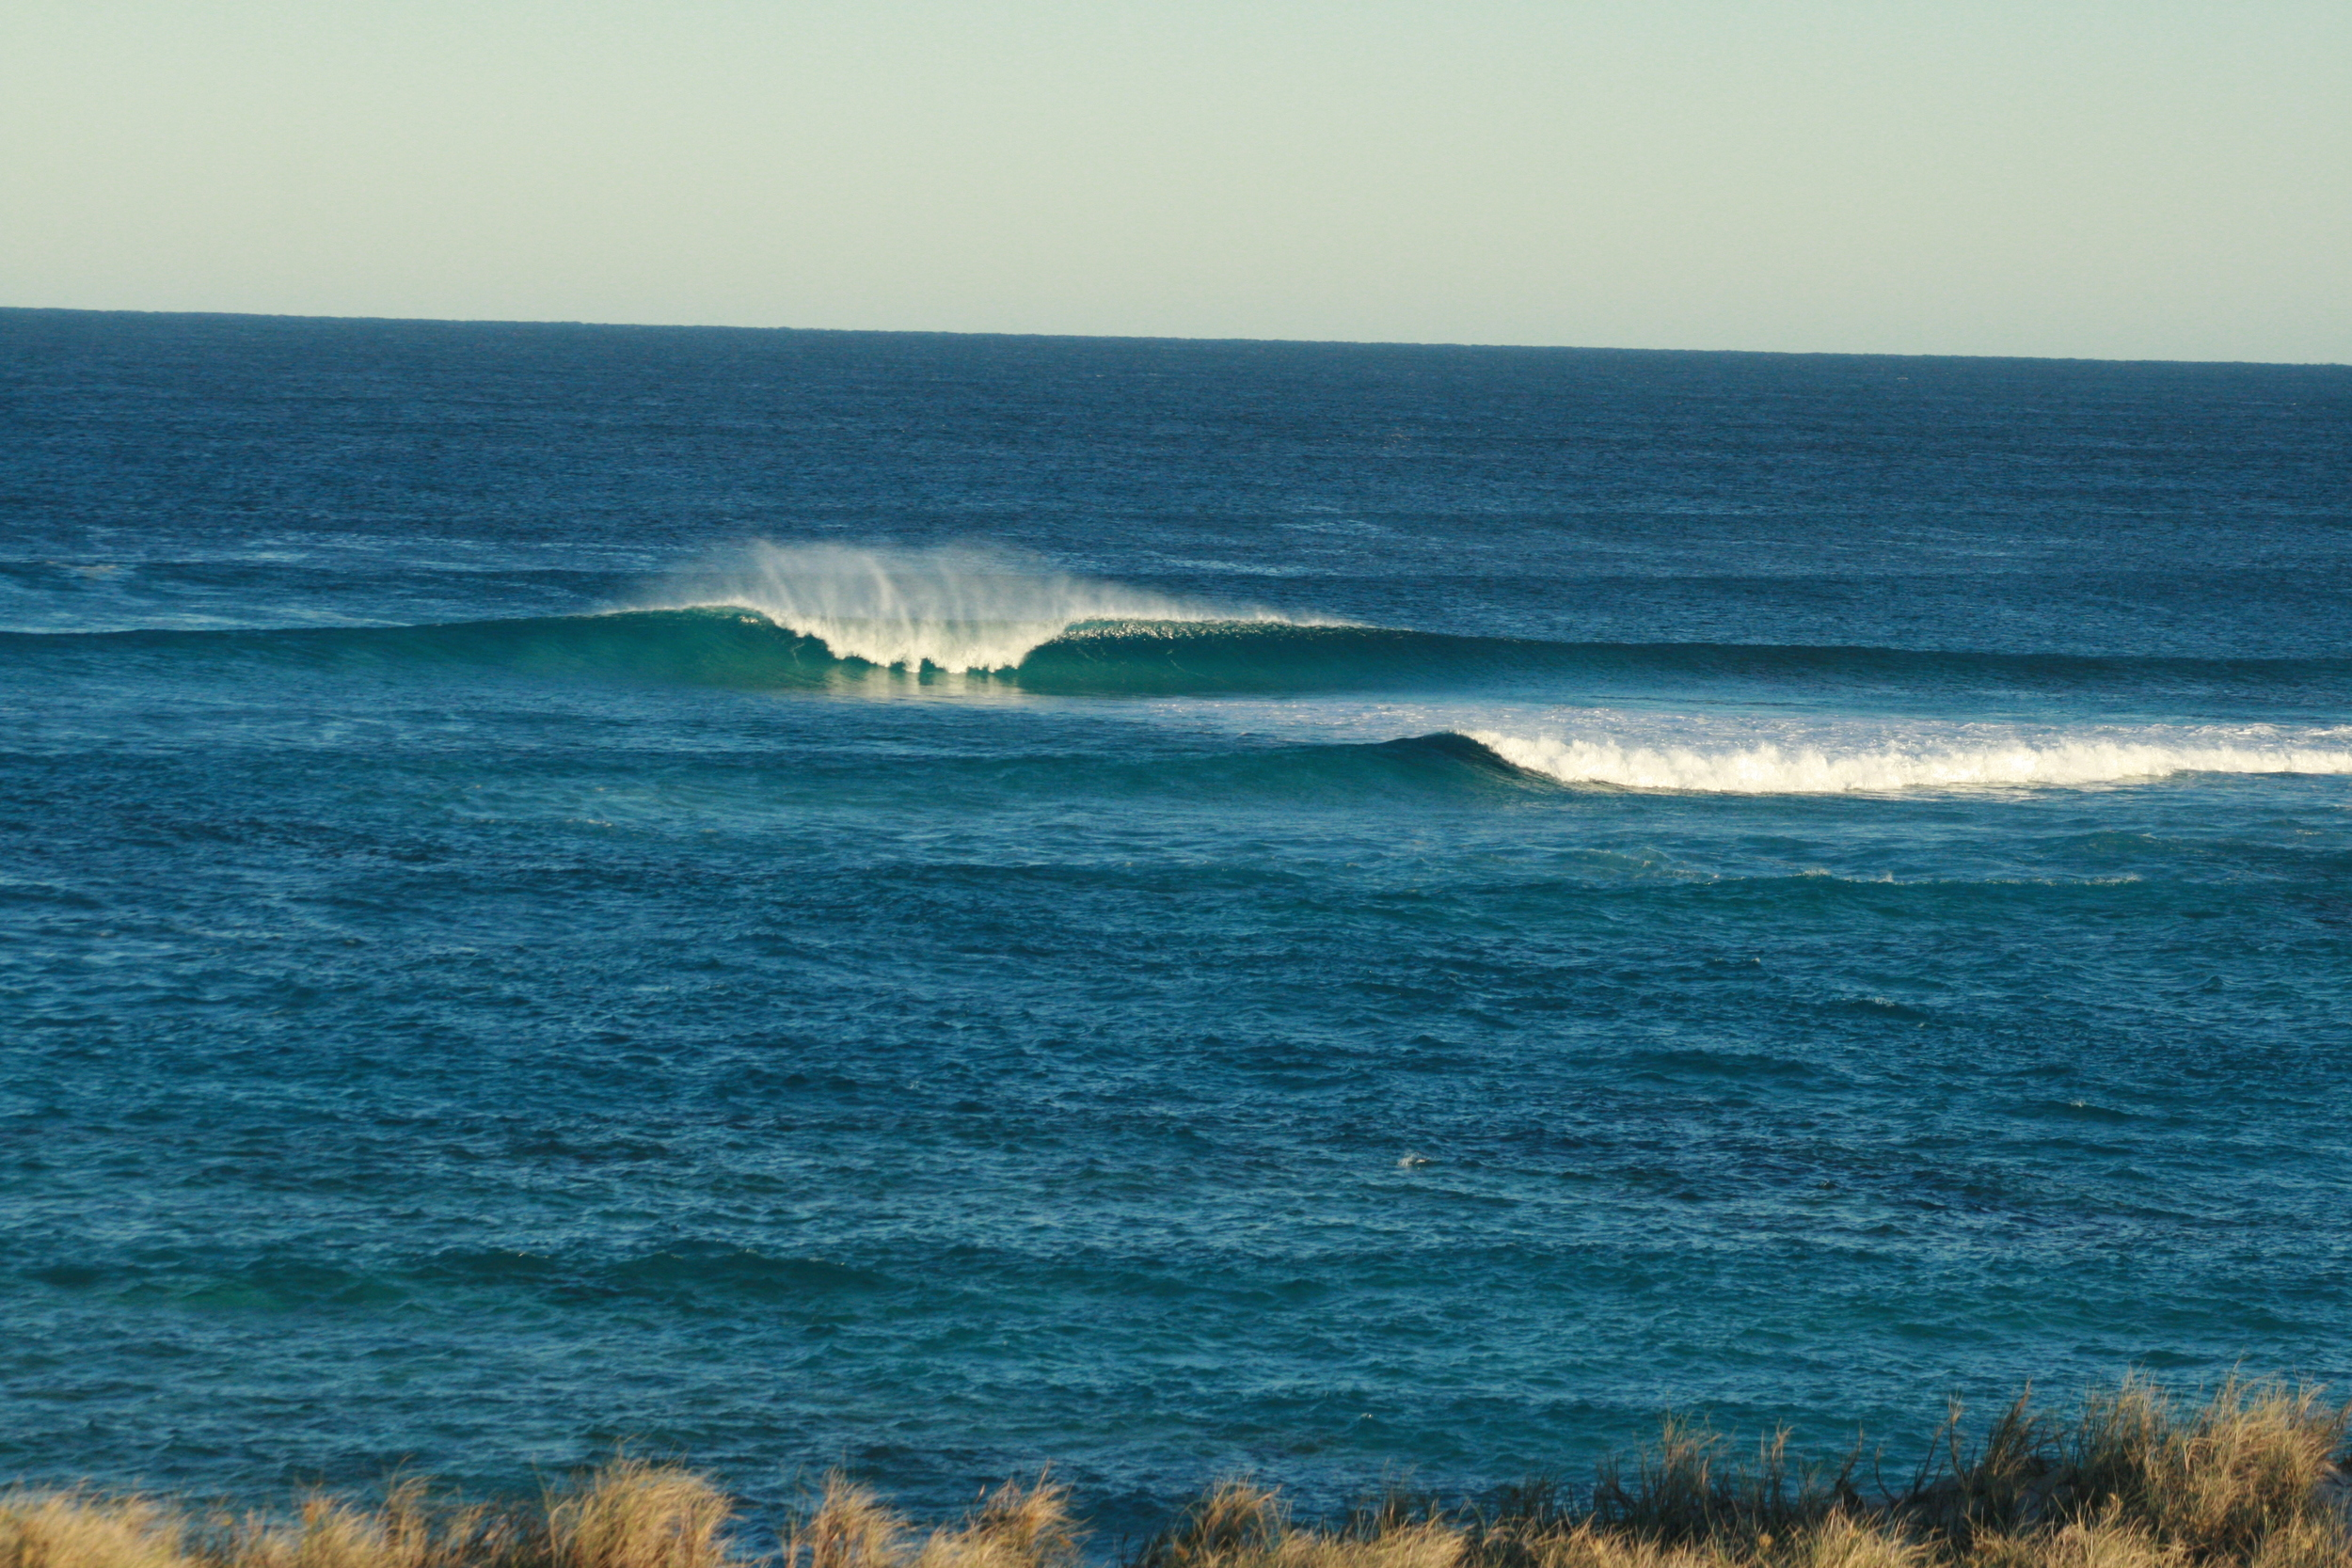 Wokeup onthe 2nd day, stiff as a board, still pumping, straight out there! Photo: Tom Nagle